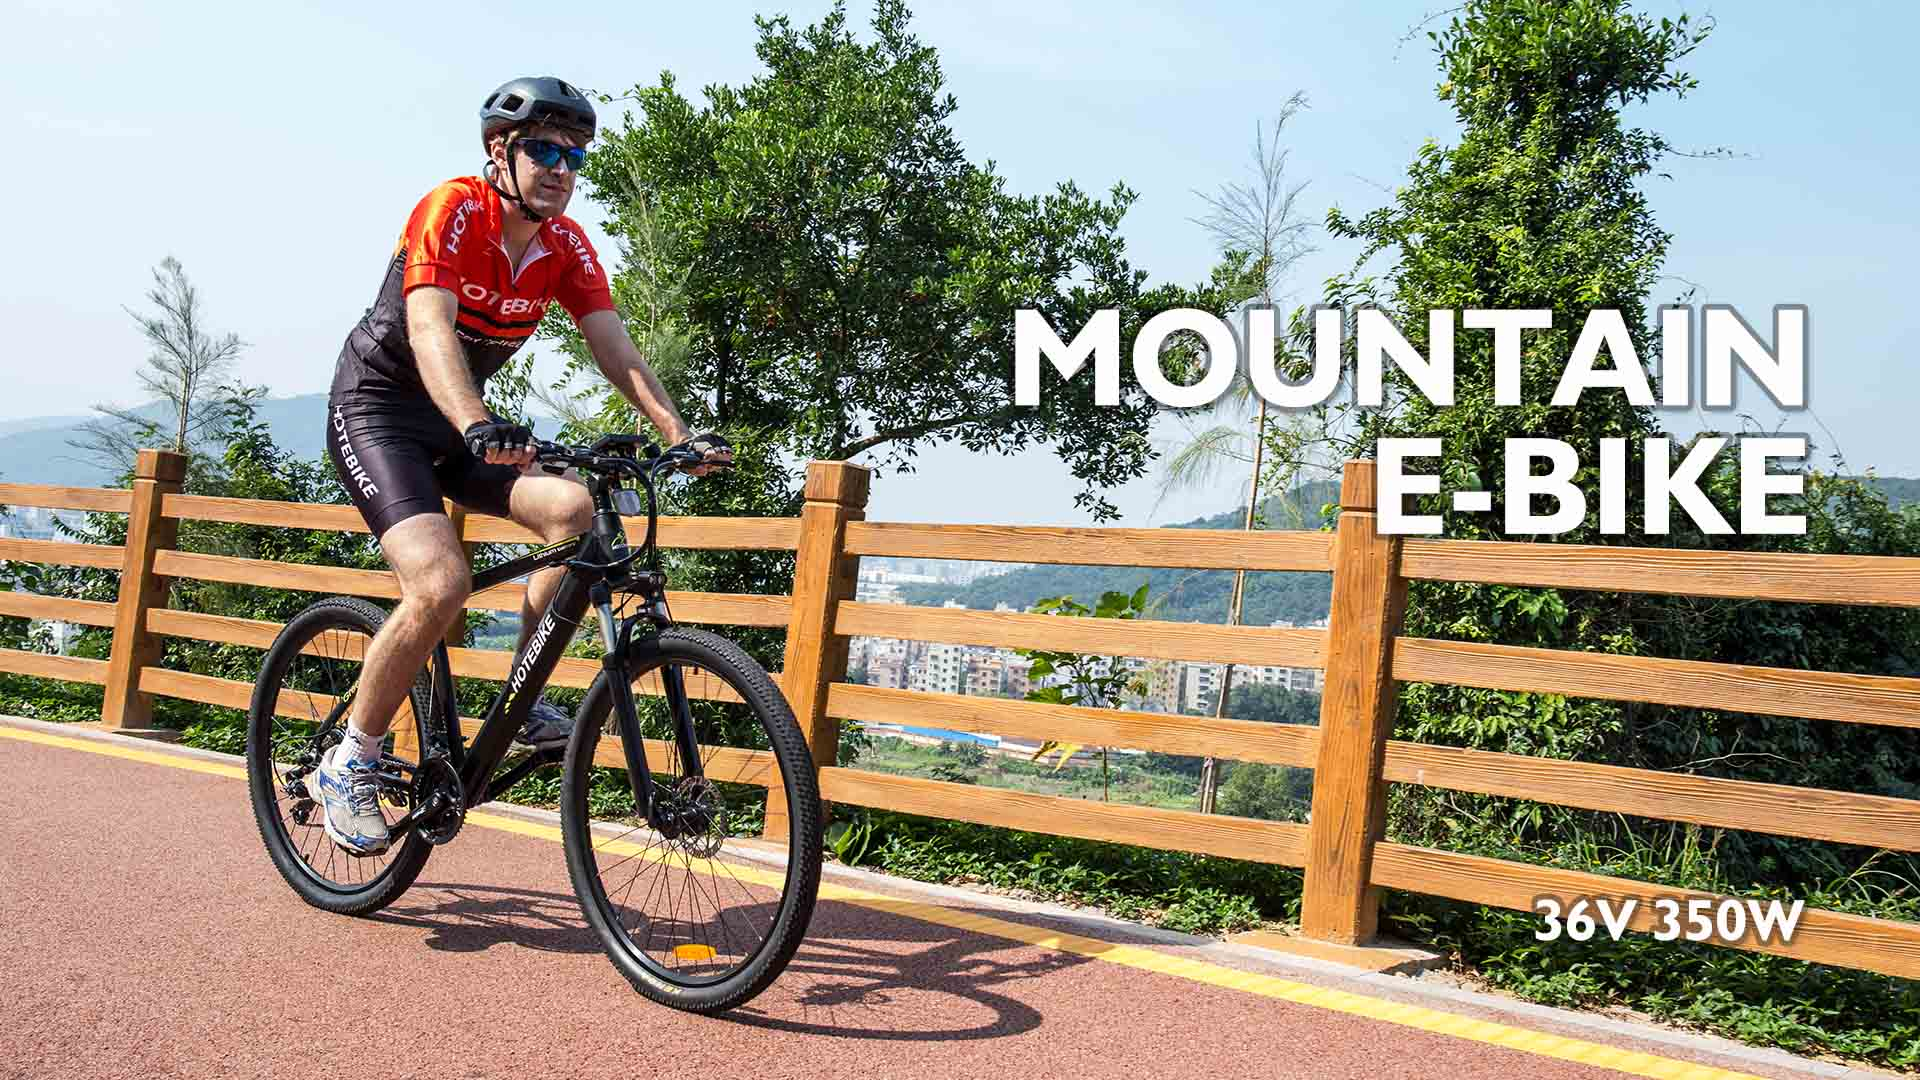 Electric Mounatin Bike A6AH26 Video